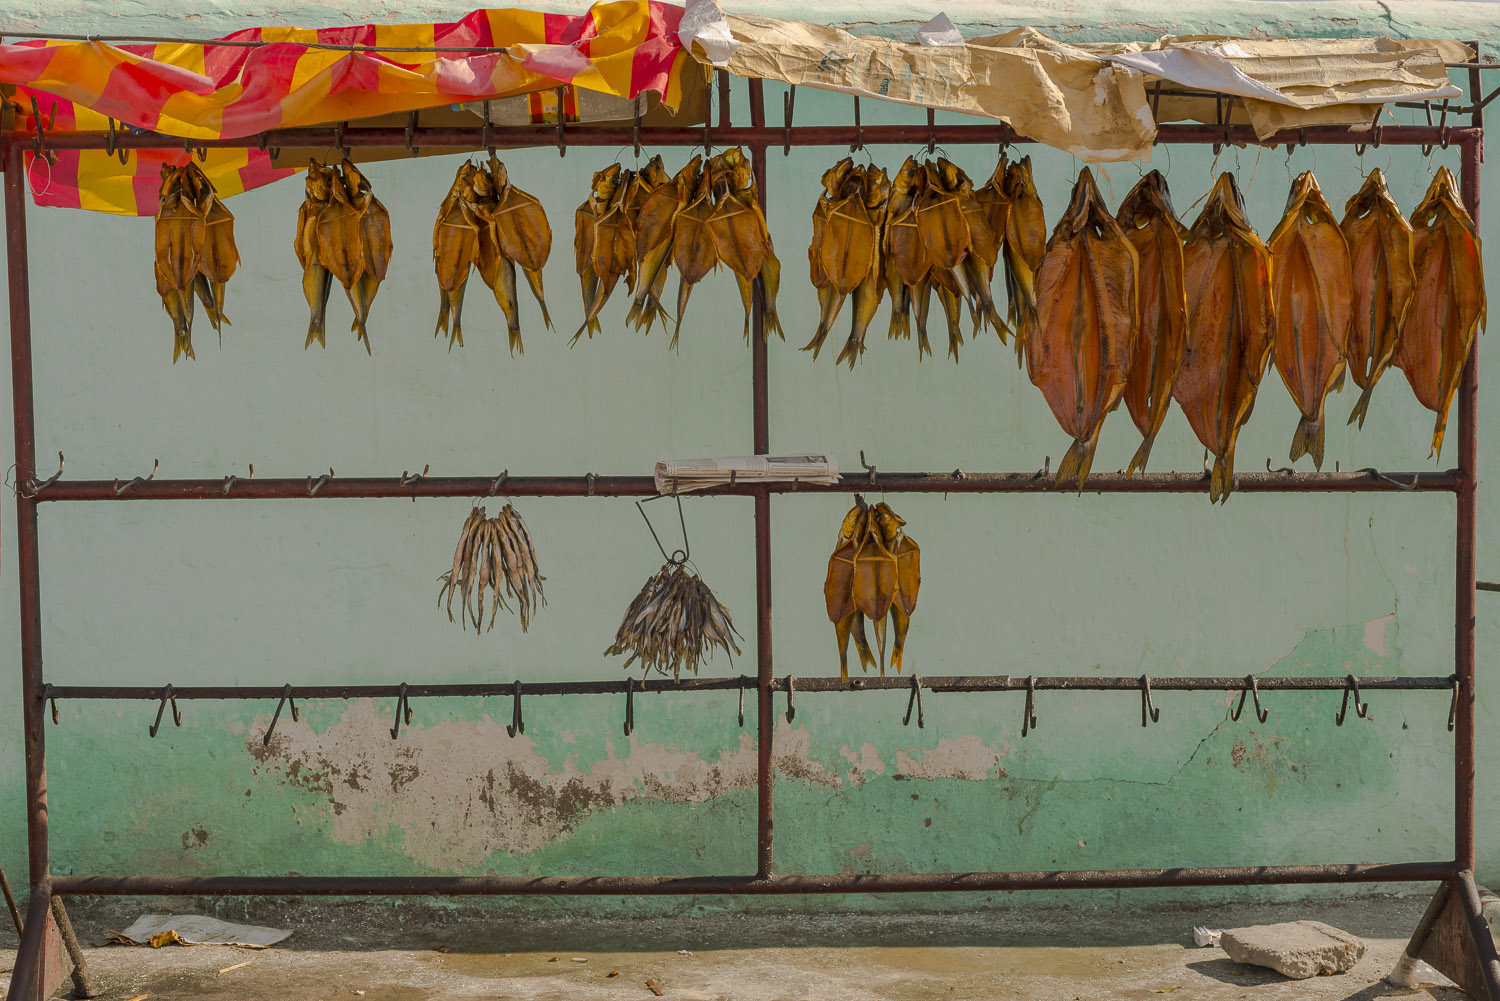 roadside-stalls-market-kyrgyzstan-travel-photography-groceries-osh-dried-fish-balykchy.jpg